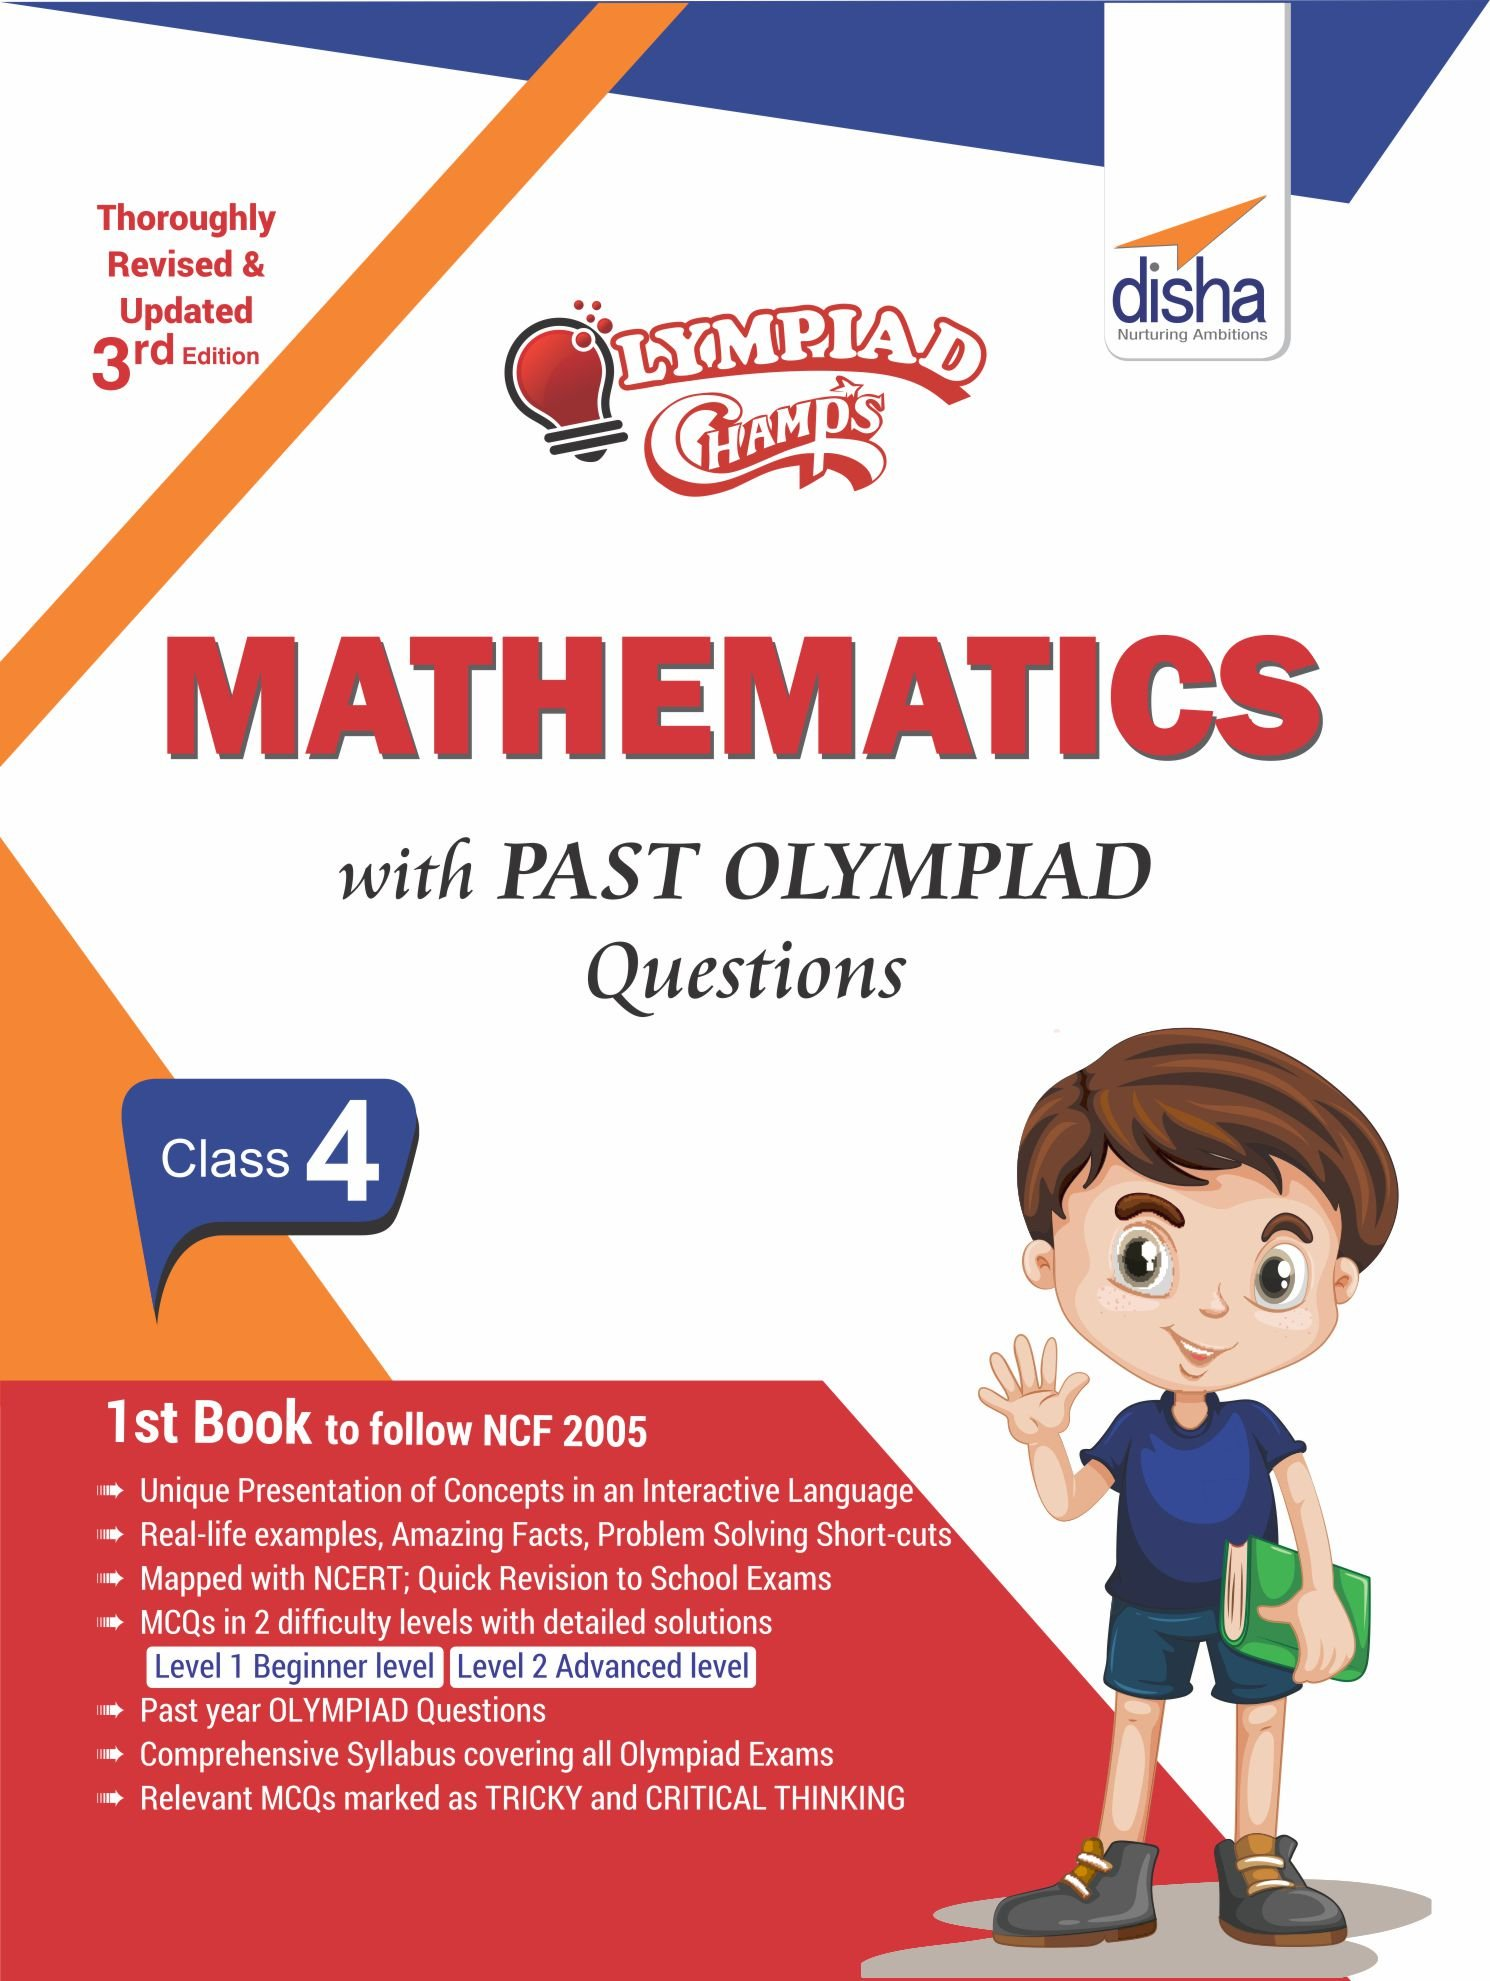 Buy Olympiad Champs Mathematics Class 4 with Past Olympiad